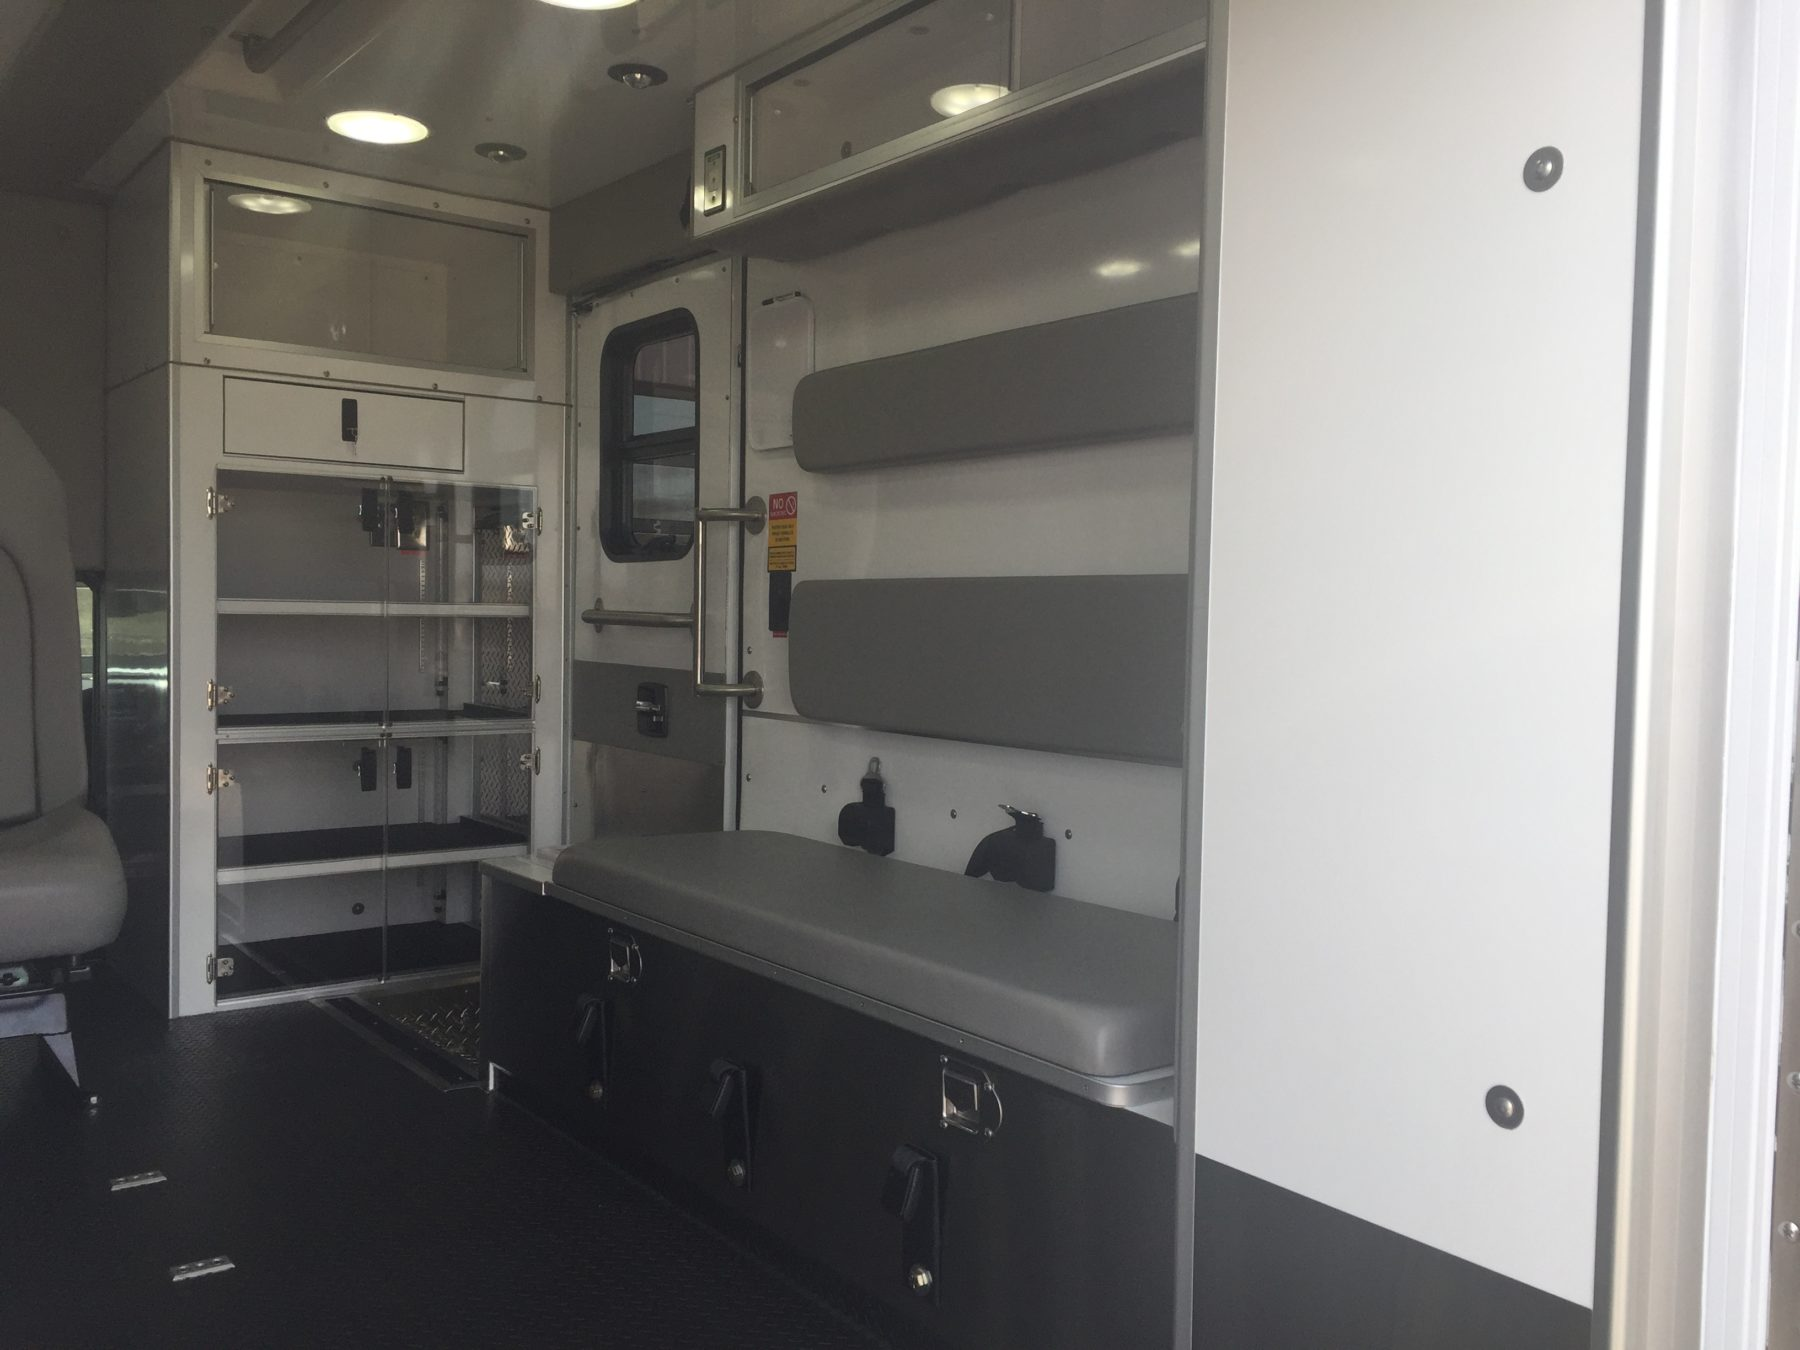 2019 Chevrolet K3500 4x4 Type 1 Ambulance For Sale – Picture 13